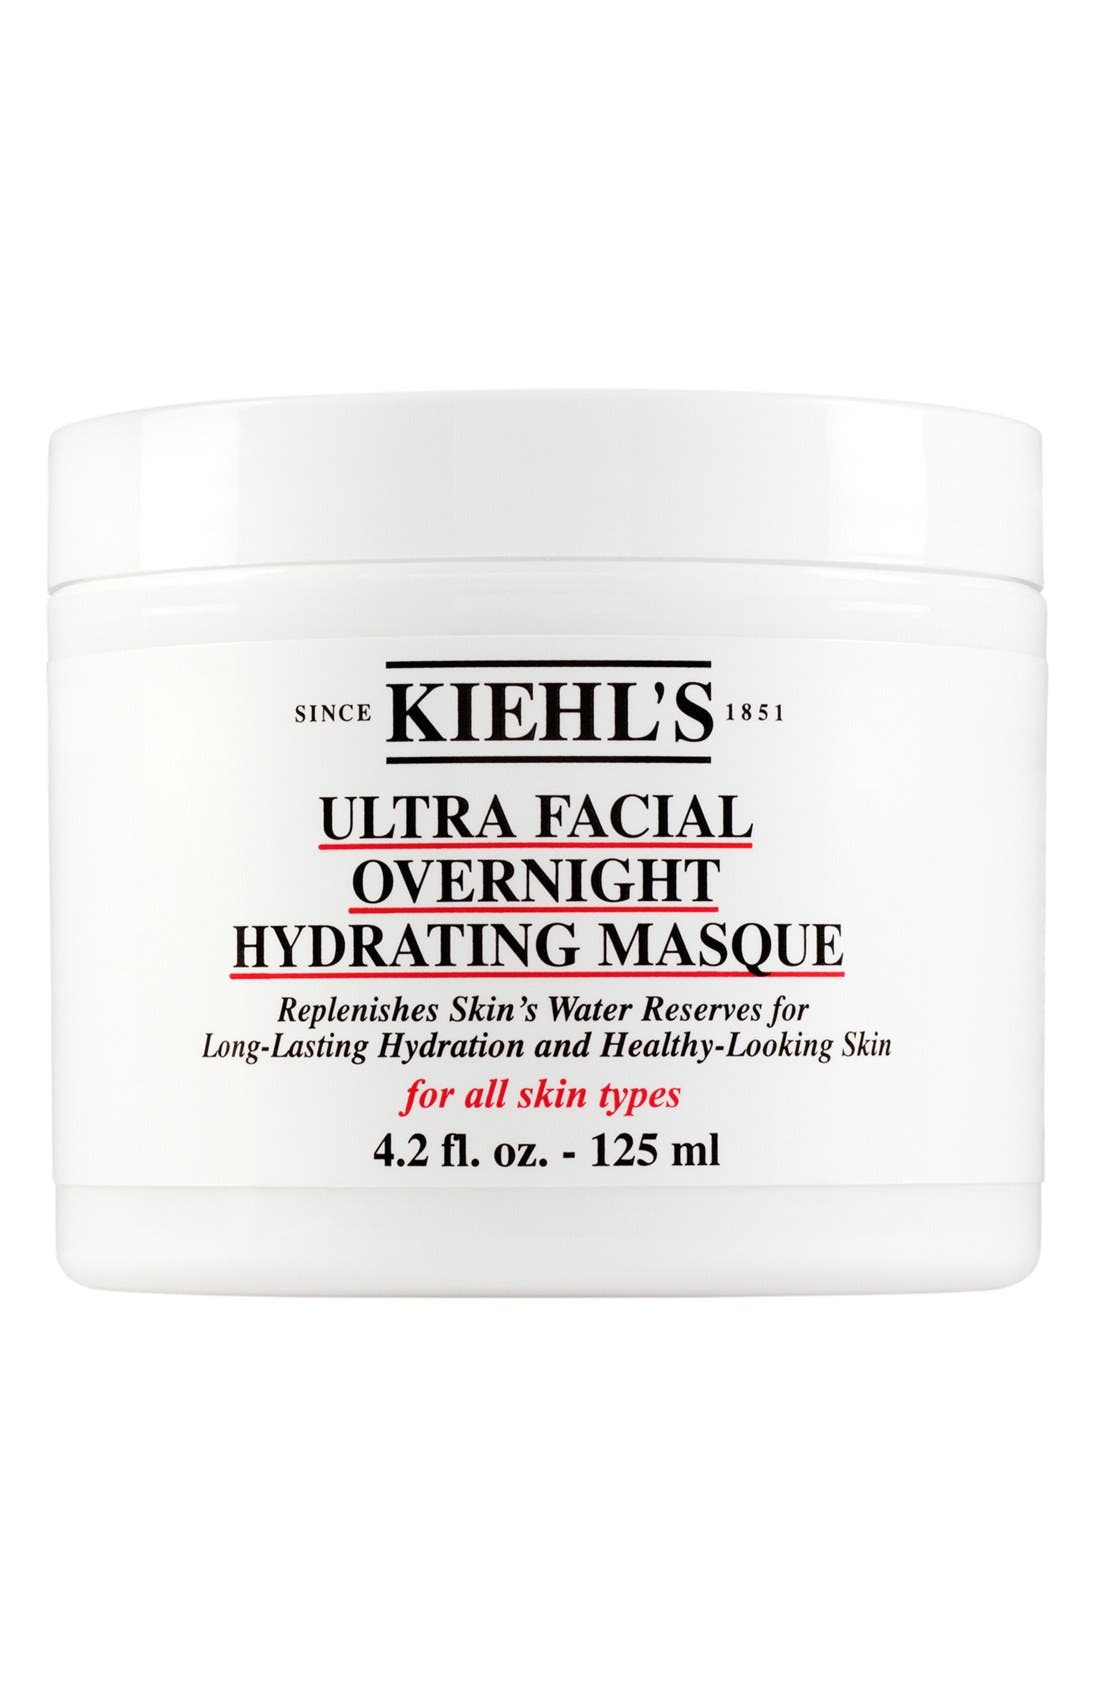 KIEHL'S SINCE 1851,                             Ultra Facial Overnight Hydrating Masque,                             Main thumbnail 1, color,                             NO COLOR